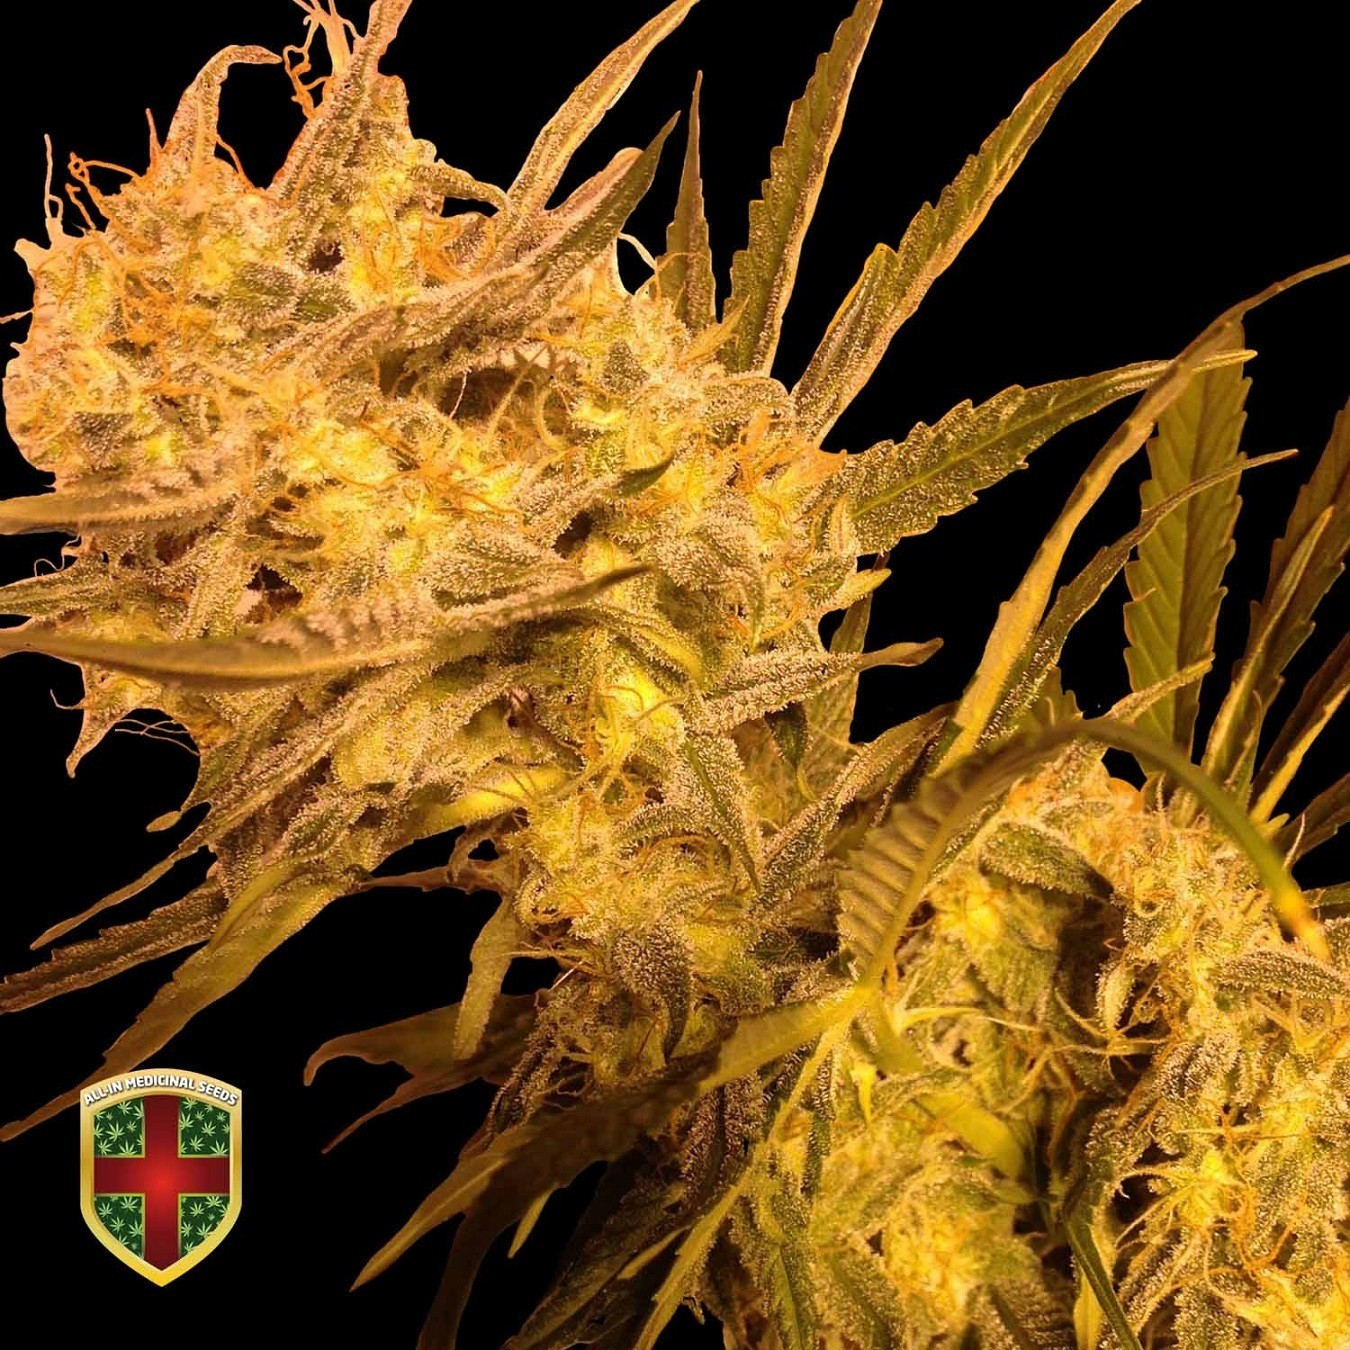 BENEDICTA - 10 UNDS. FEM - ALL IN MEDICINAL - ALL-IN MEDICINAL SEEDS